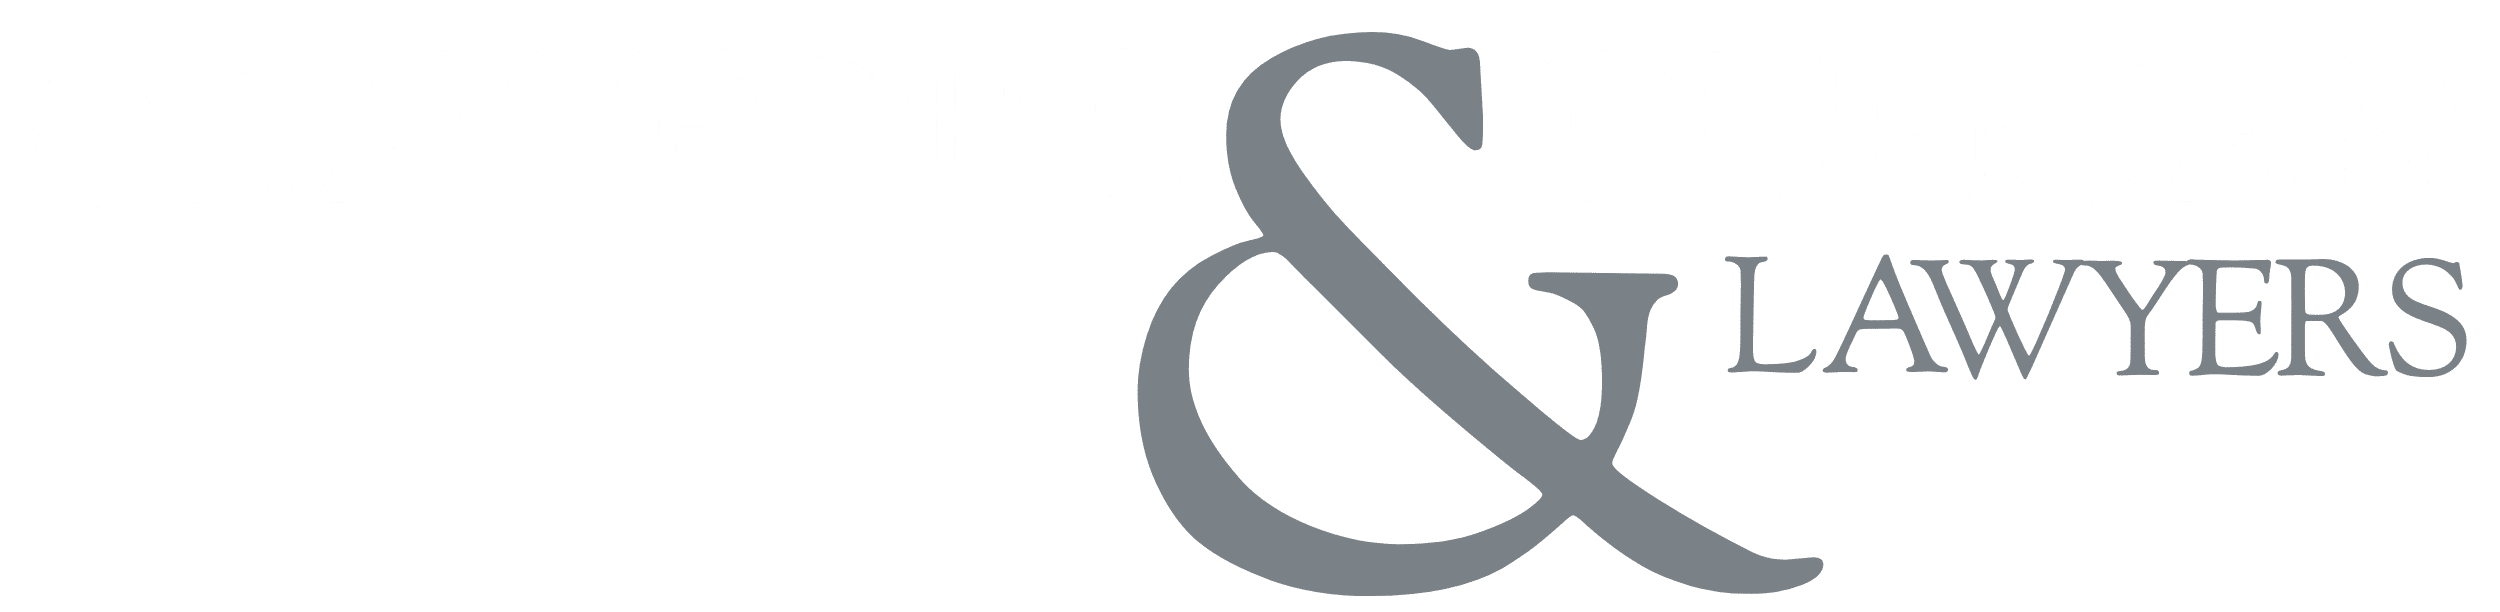 Criminal Lawyer | Crawford & Duncan Lawyers